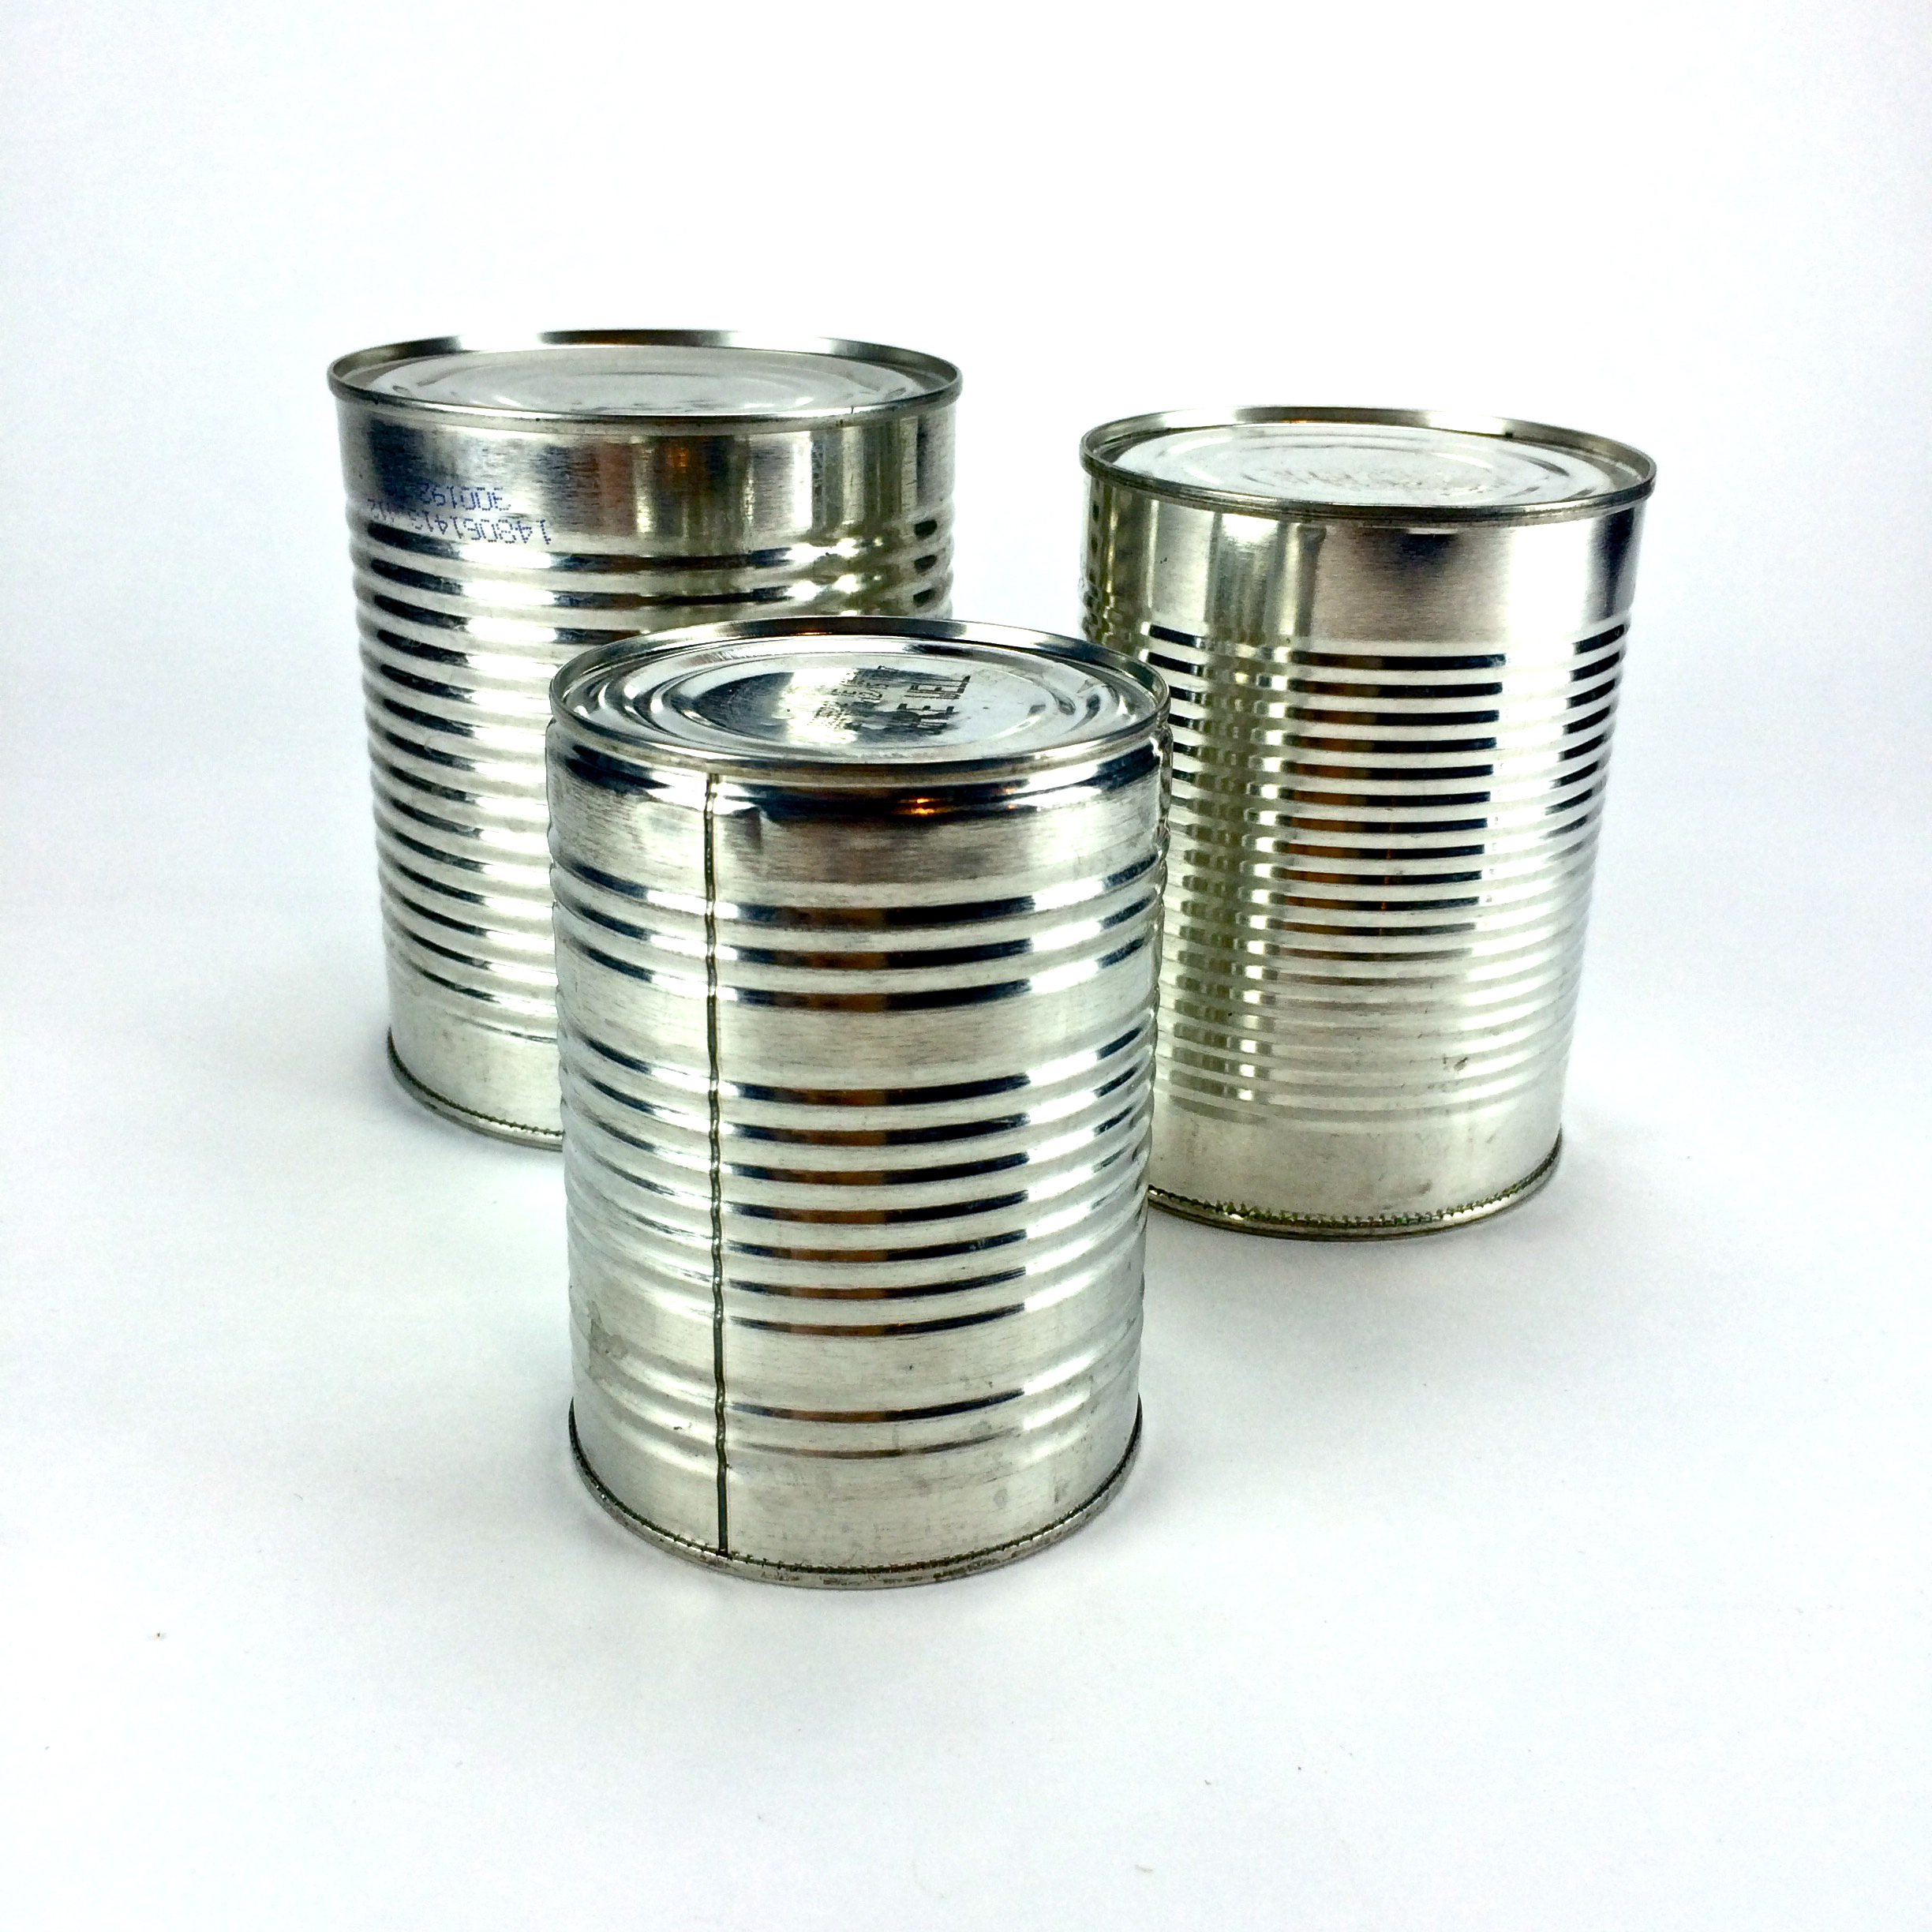 Metal Cans Image